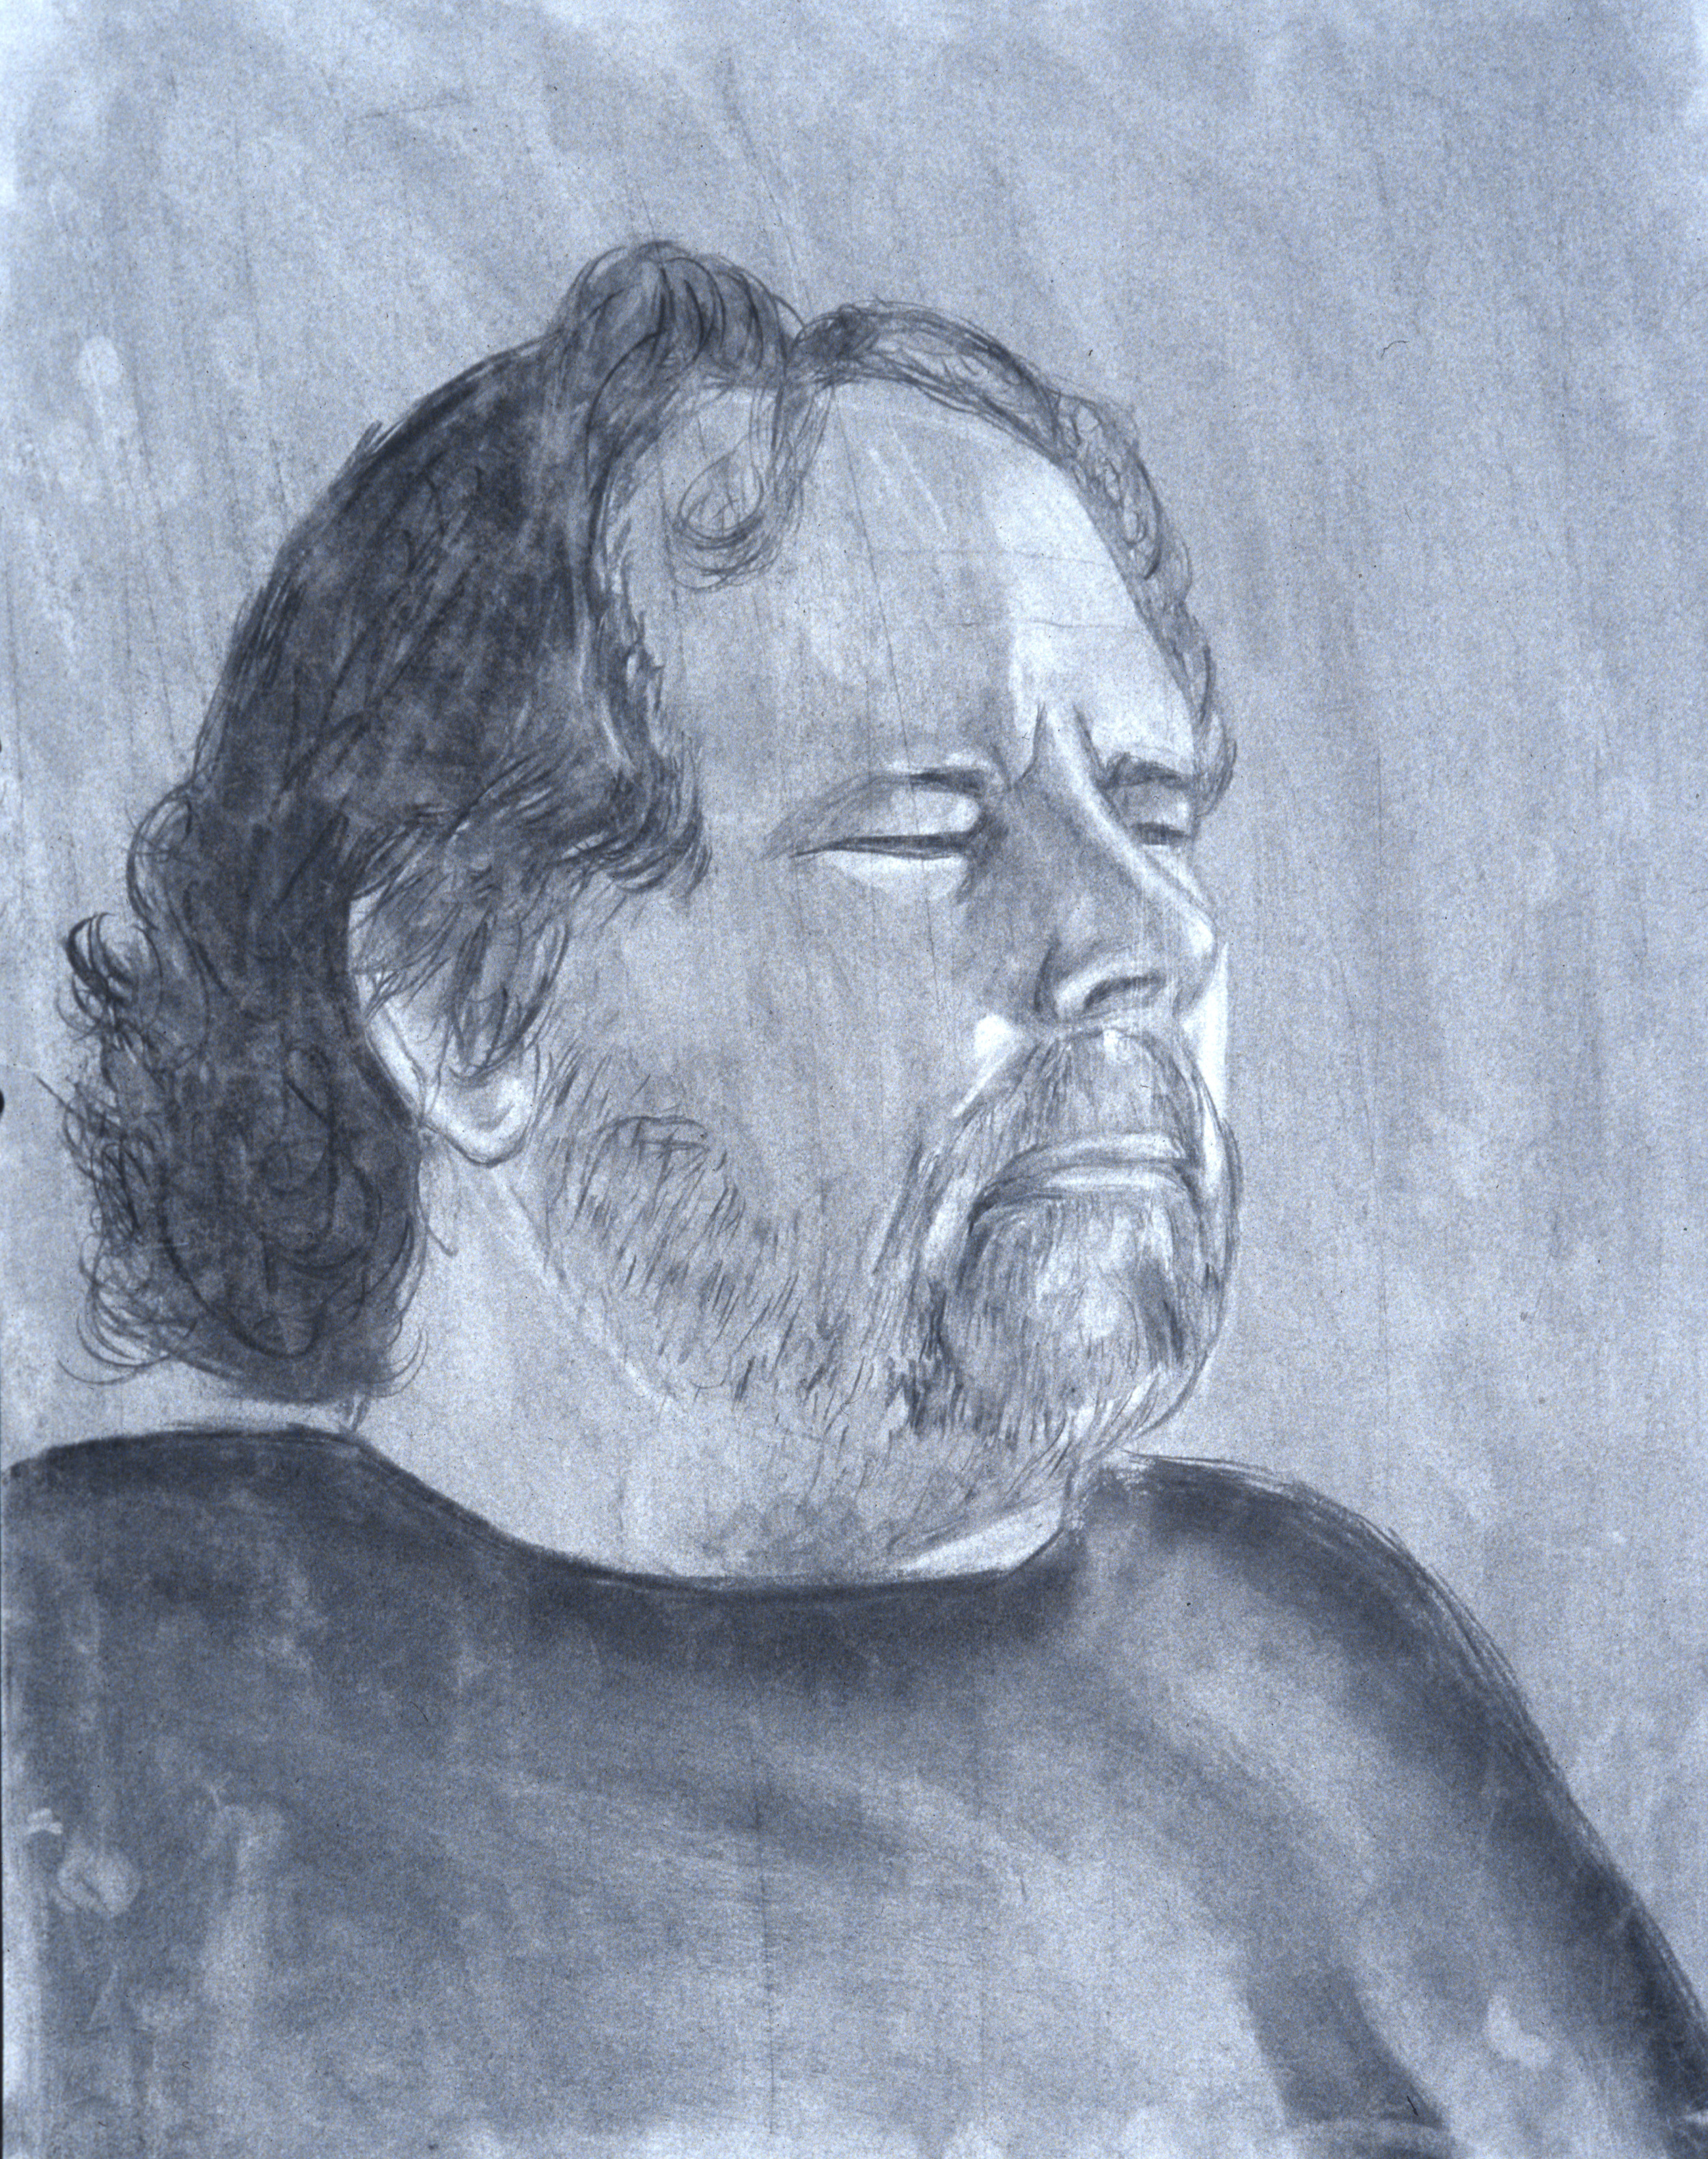 Portrait; charcoal drawing